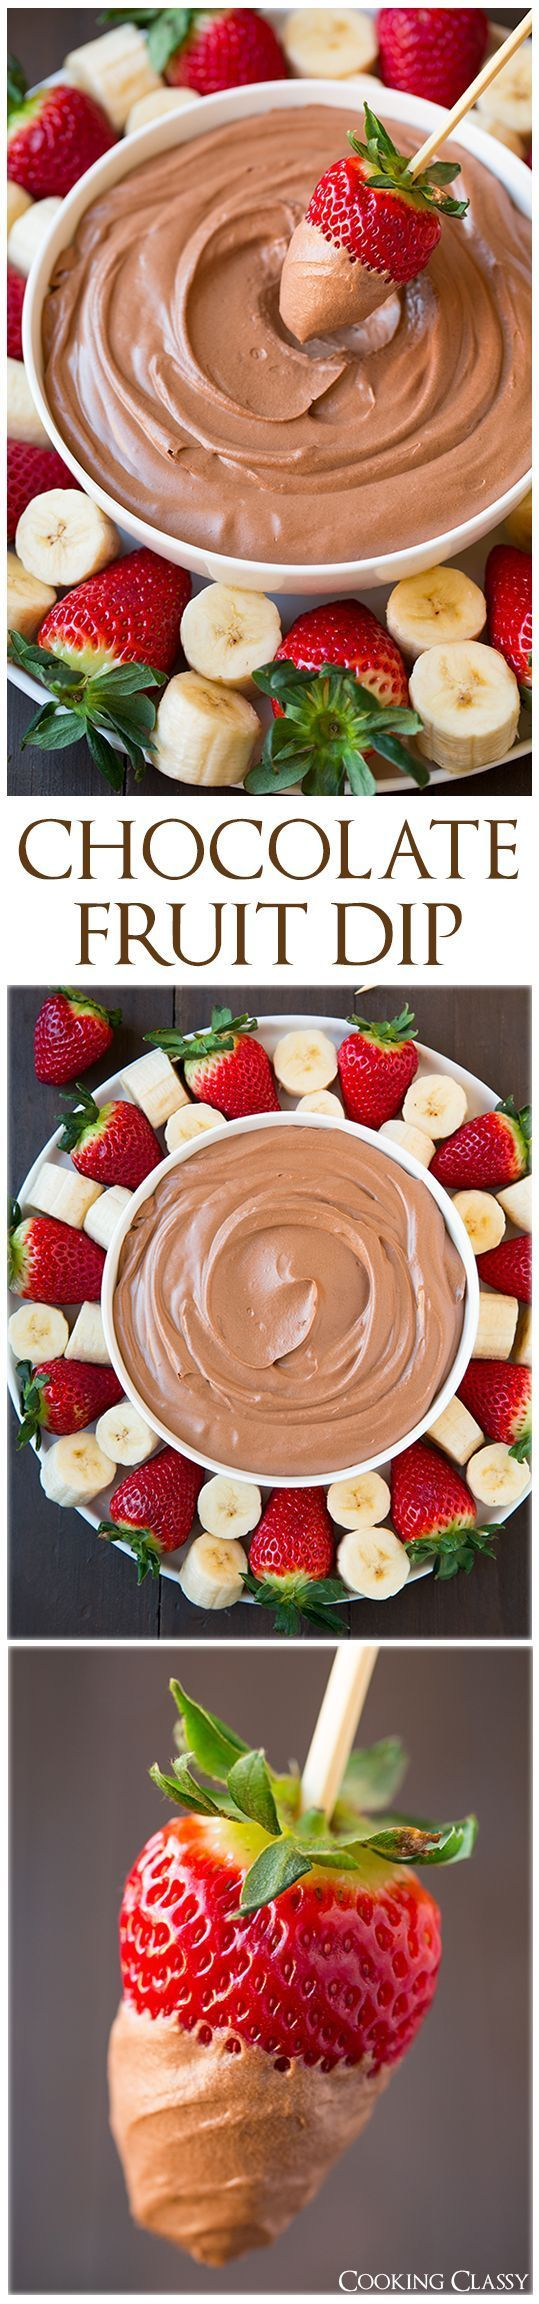 Chocolate Fruit Dip - Perfectly light and creamy and deliciously chocolatey. Easy to make too! Loved it!